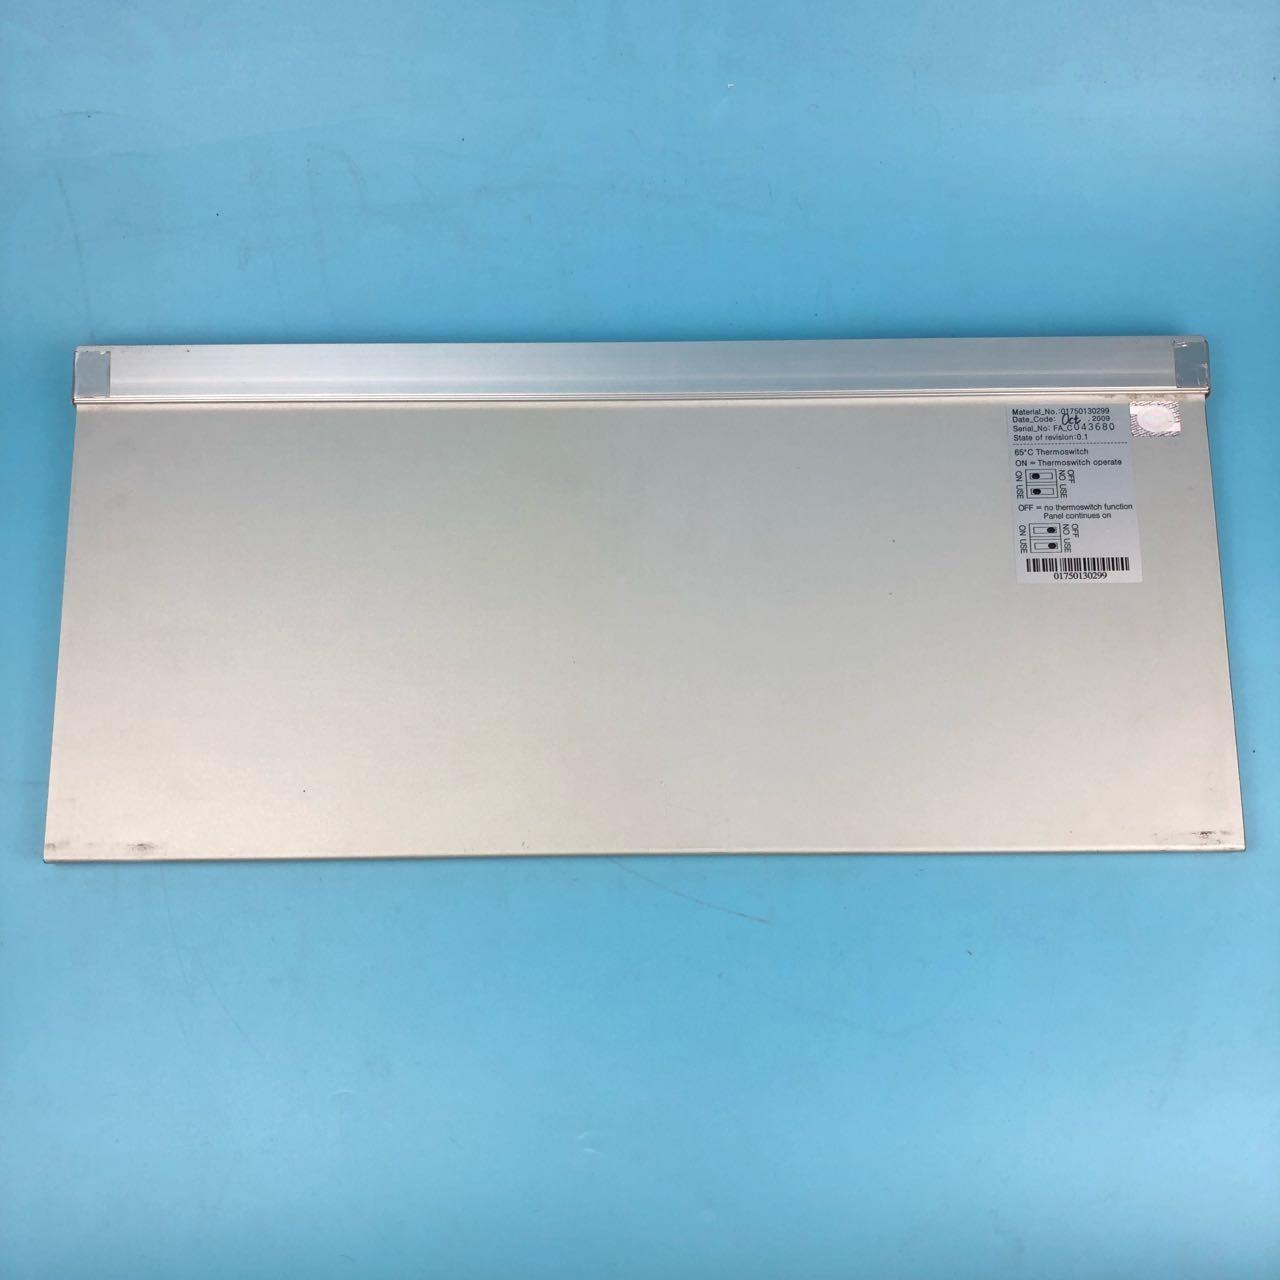 Wincor Nixdorf ATM spare parts Light Panel 1750130299 01750130299